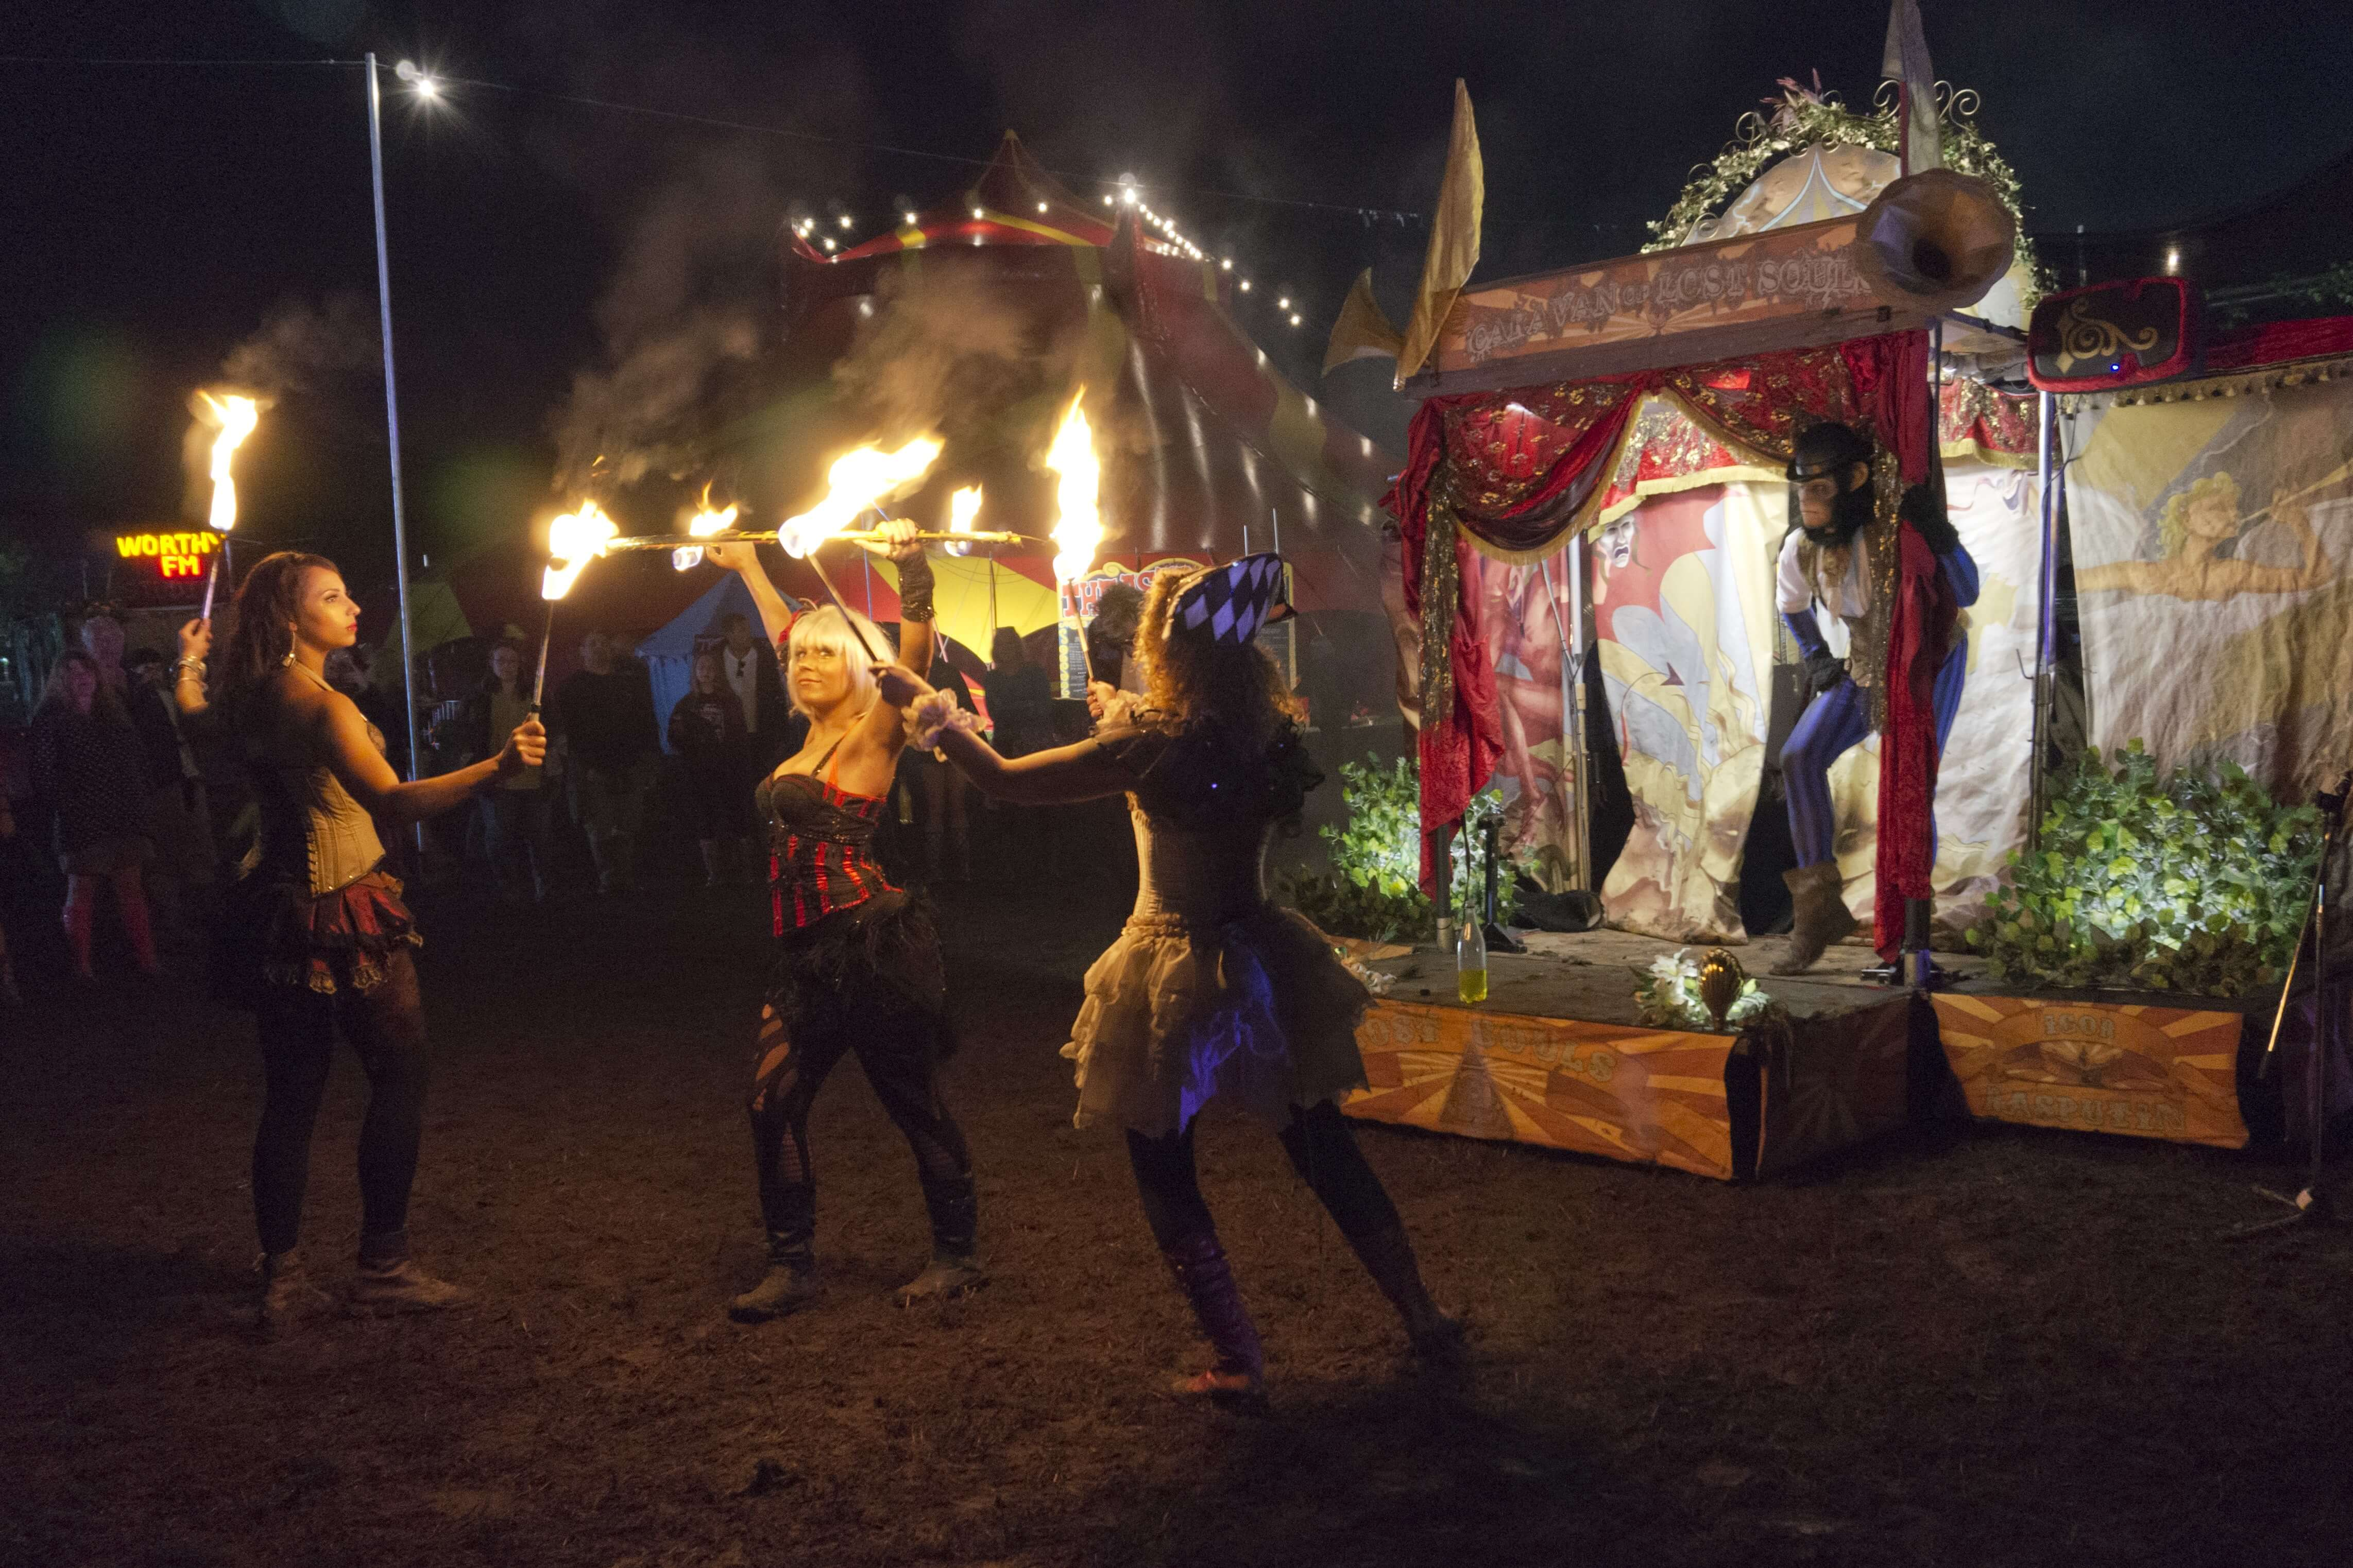 Questions about Glastonbury